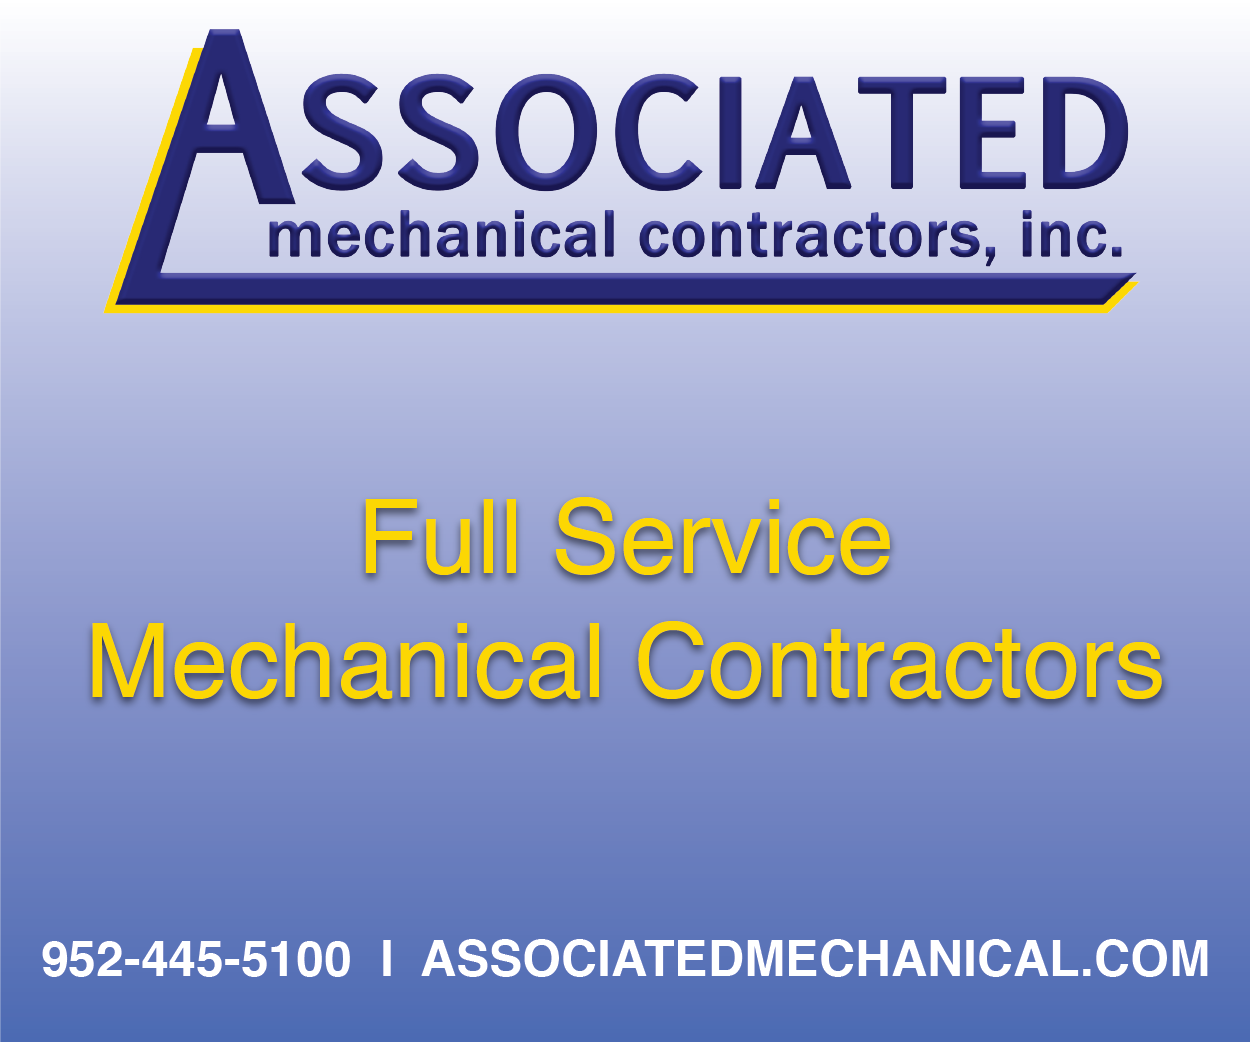 Associated Mechanical Contractors, Inc.